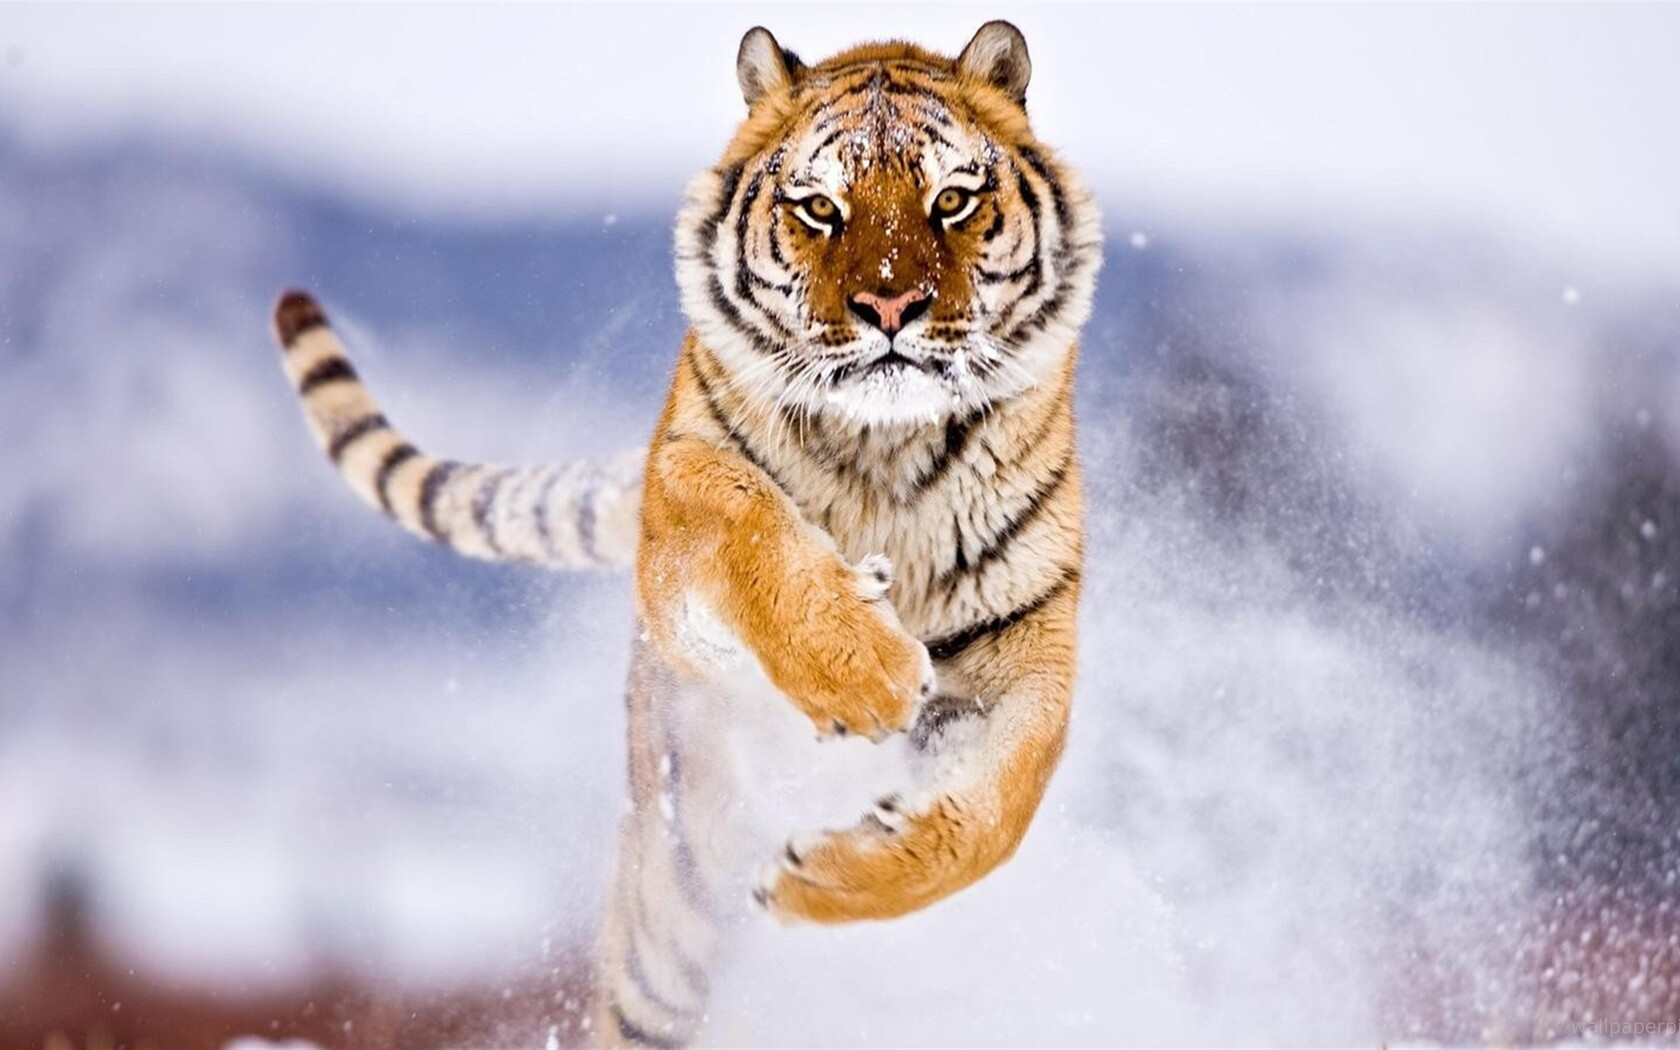 tiger-in-snow-image.jpg